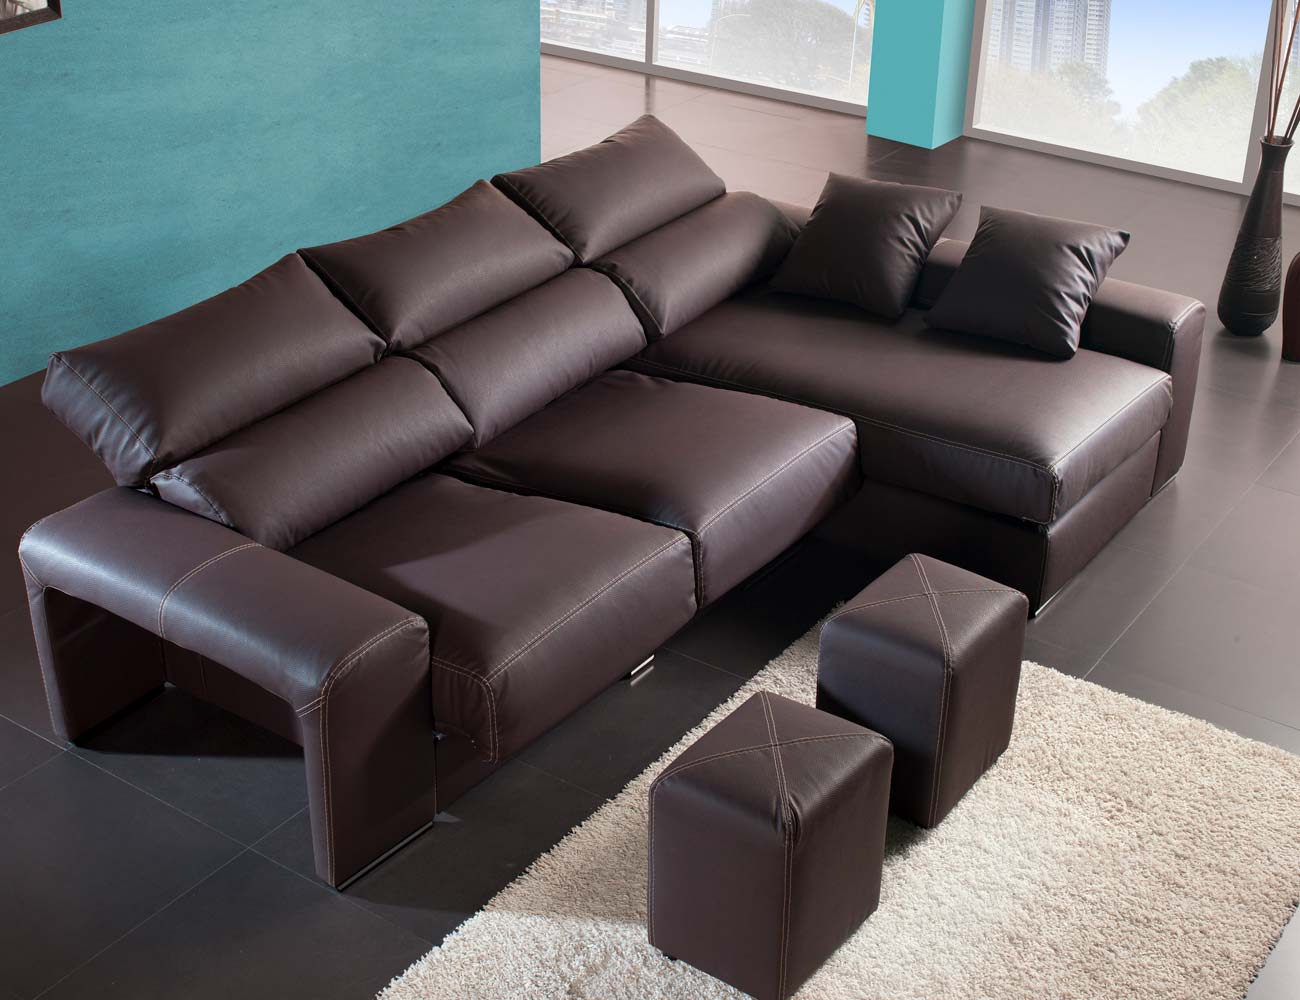 Sofa chaiselongue moderno polipiel chocolate poufs taburetes69